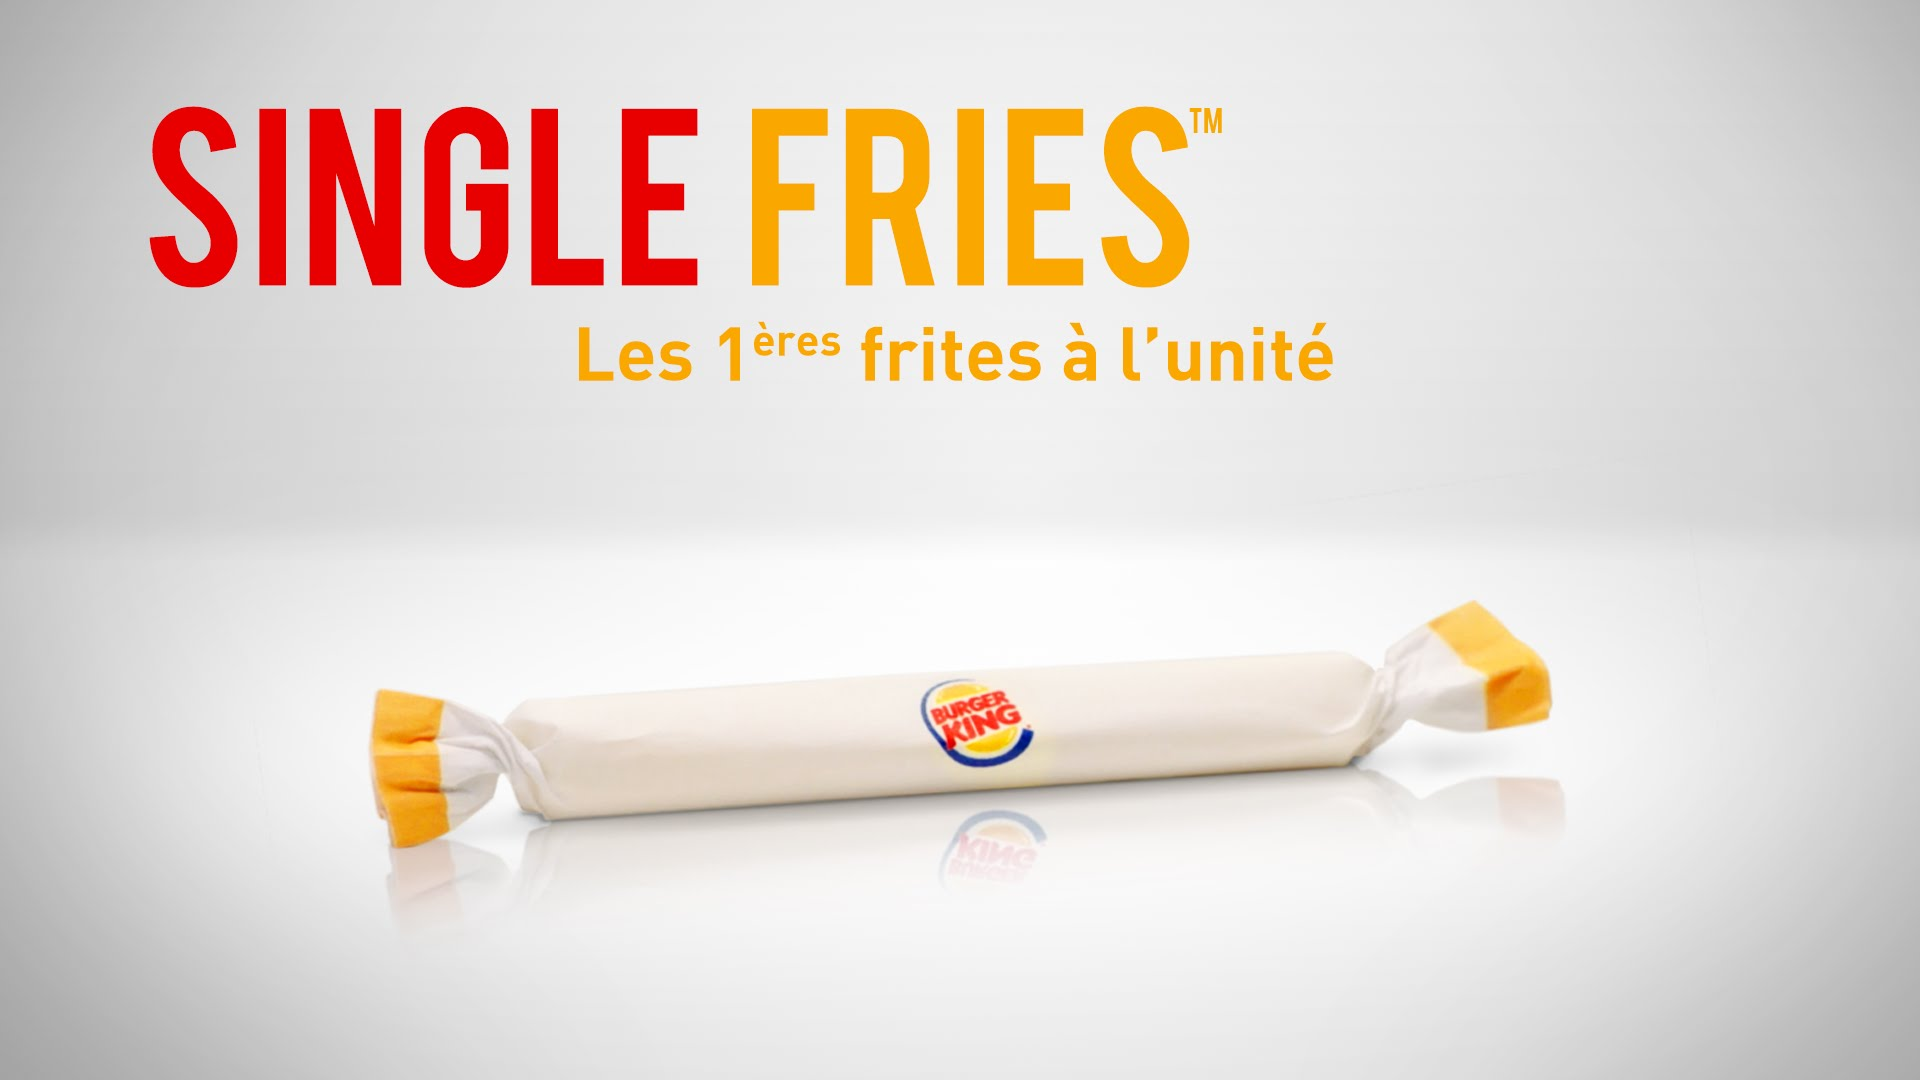 Pub de Burger King – La frite – Avril 2016